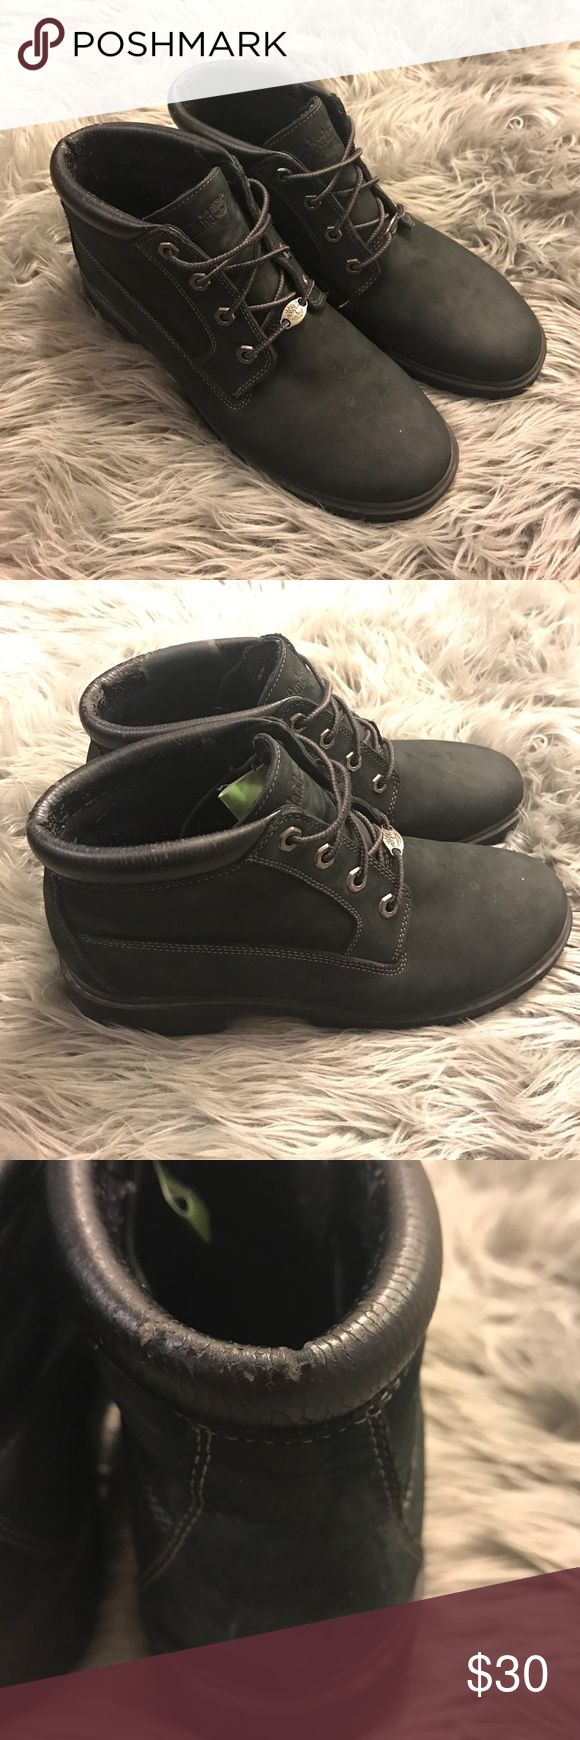 Timberland Classic Black Low Tops Timberland Classic Black Low Tops, cracking long the leather at the ankle, besides that good condition. Timberland Shoes Ankle Boots & Booties